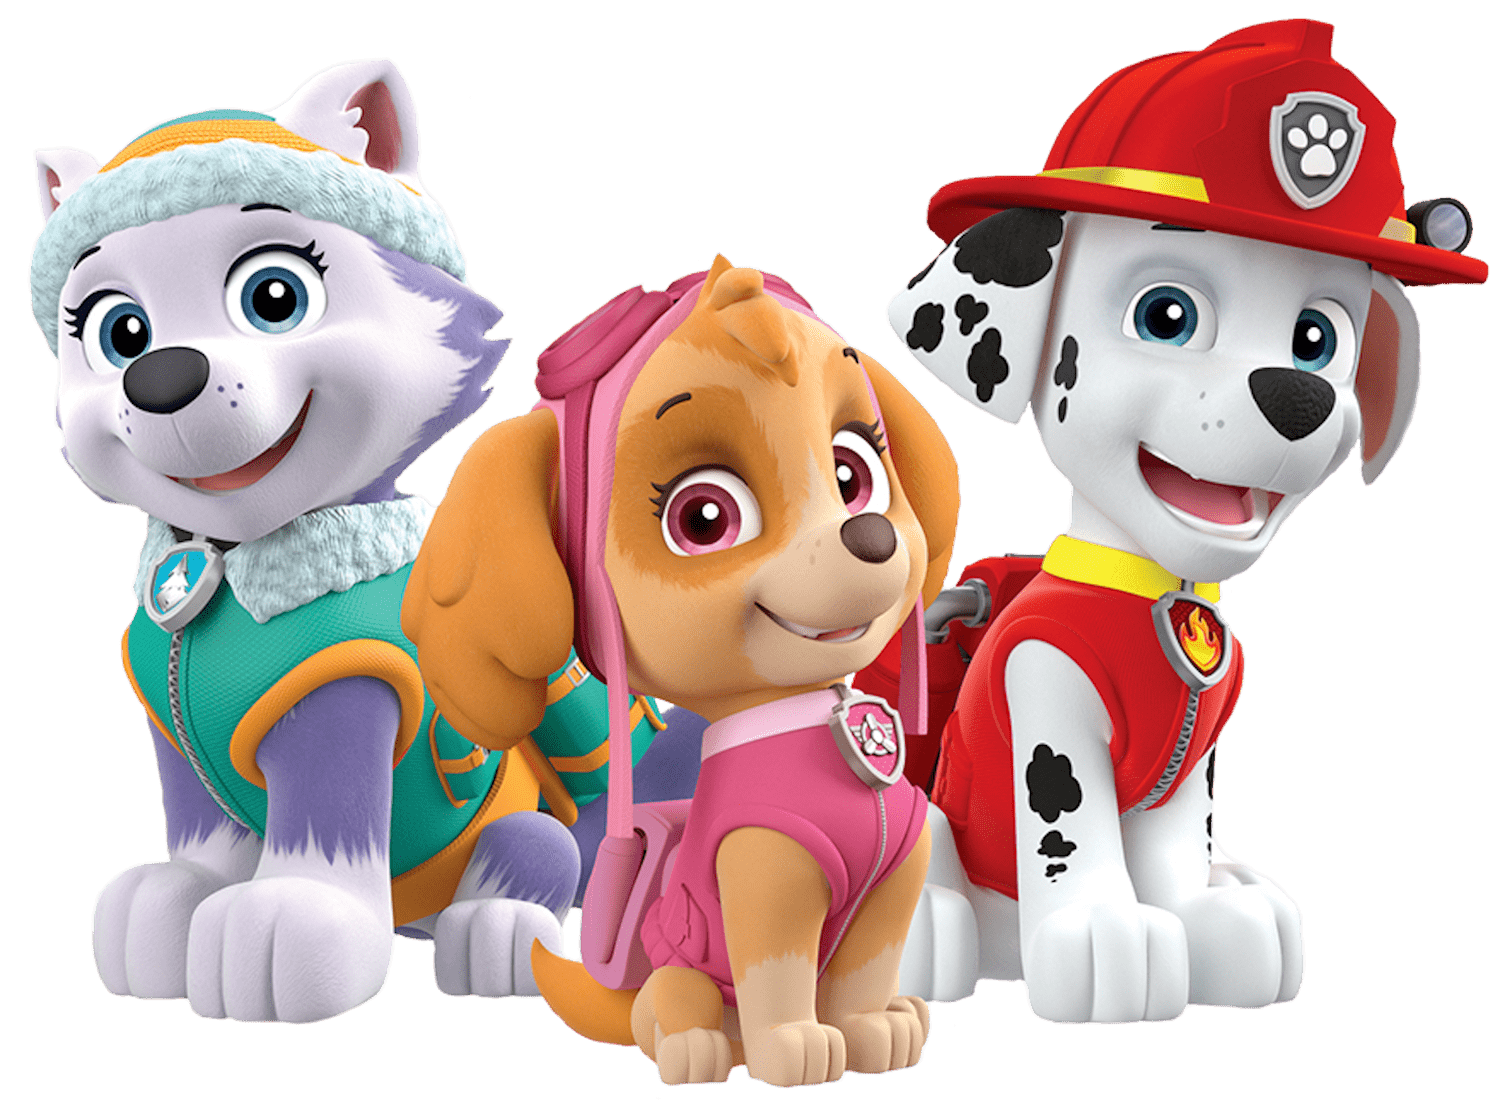 Marshall paw patrol clipart jpg black and white stock Marshall Skye Everest Paw Patrol Clipart Png jpg black and white stock